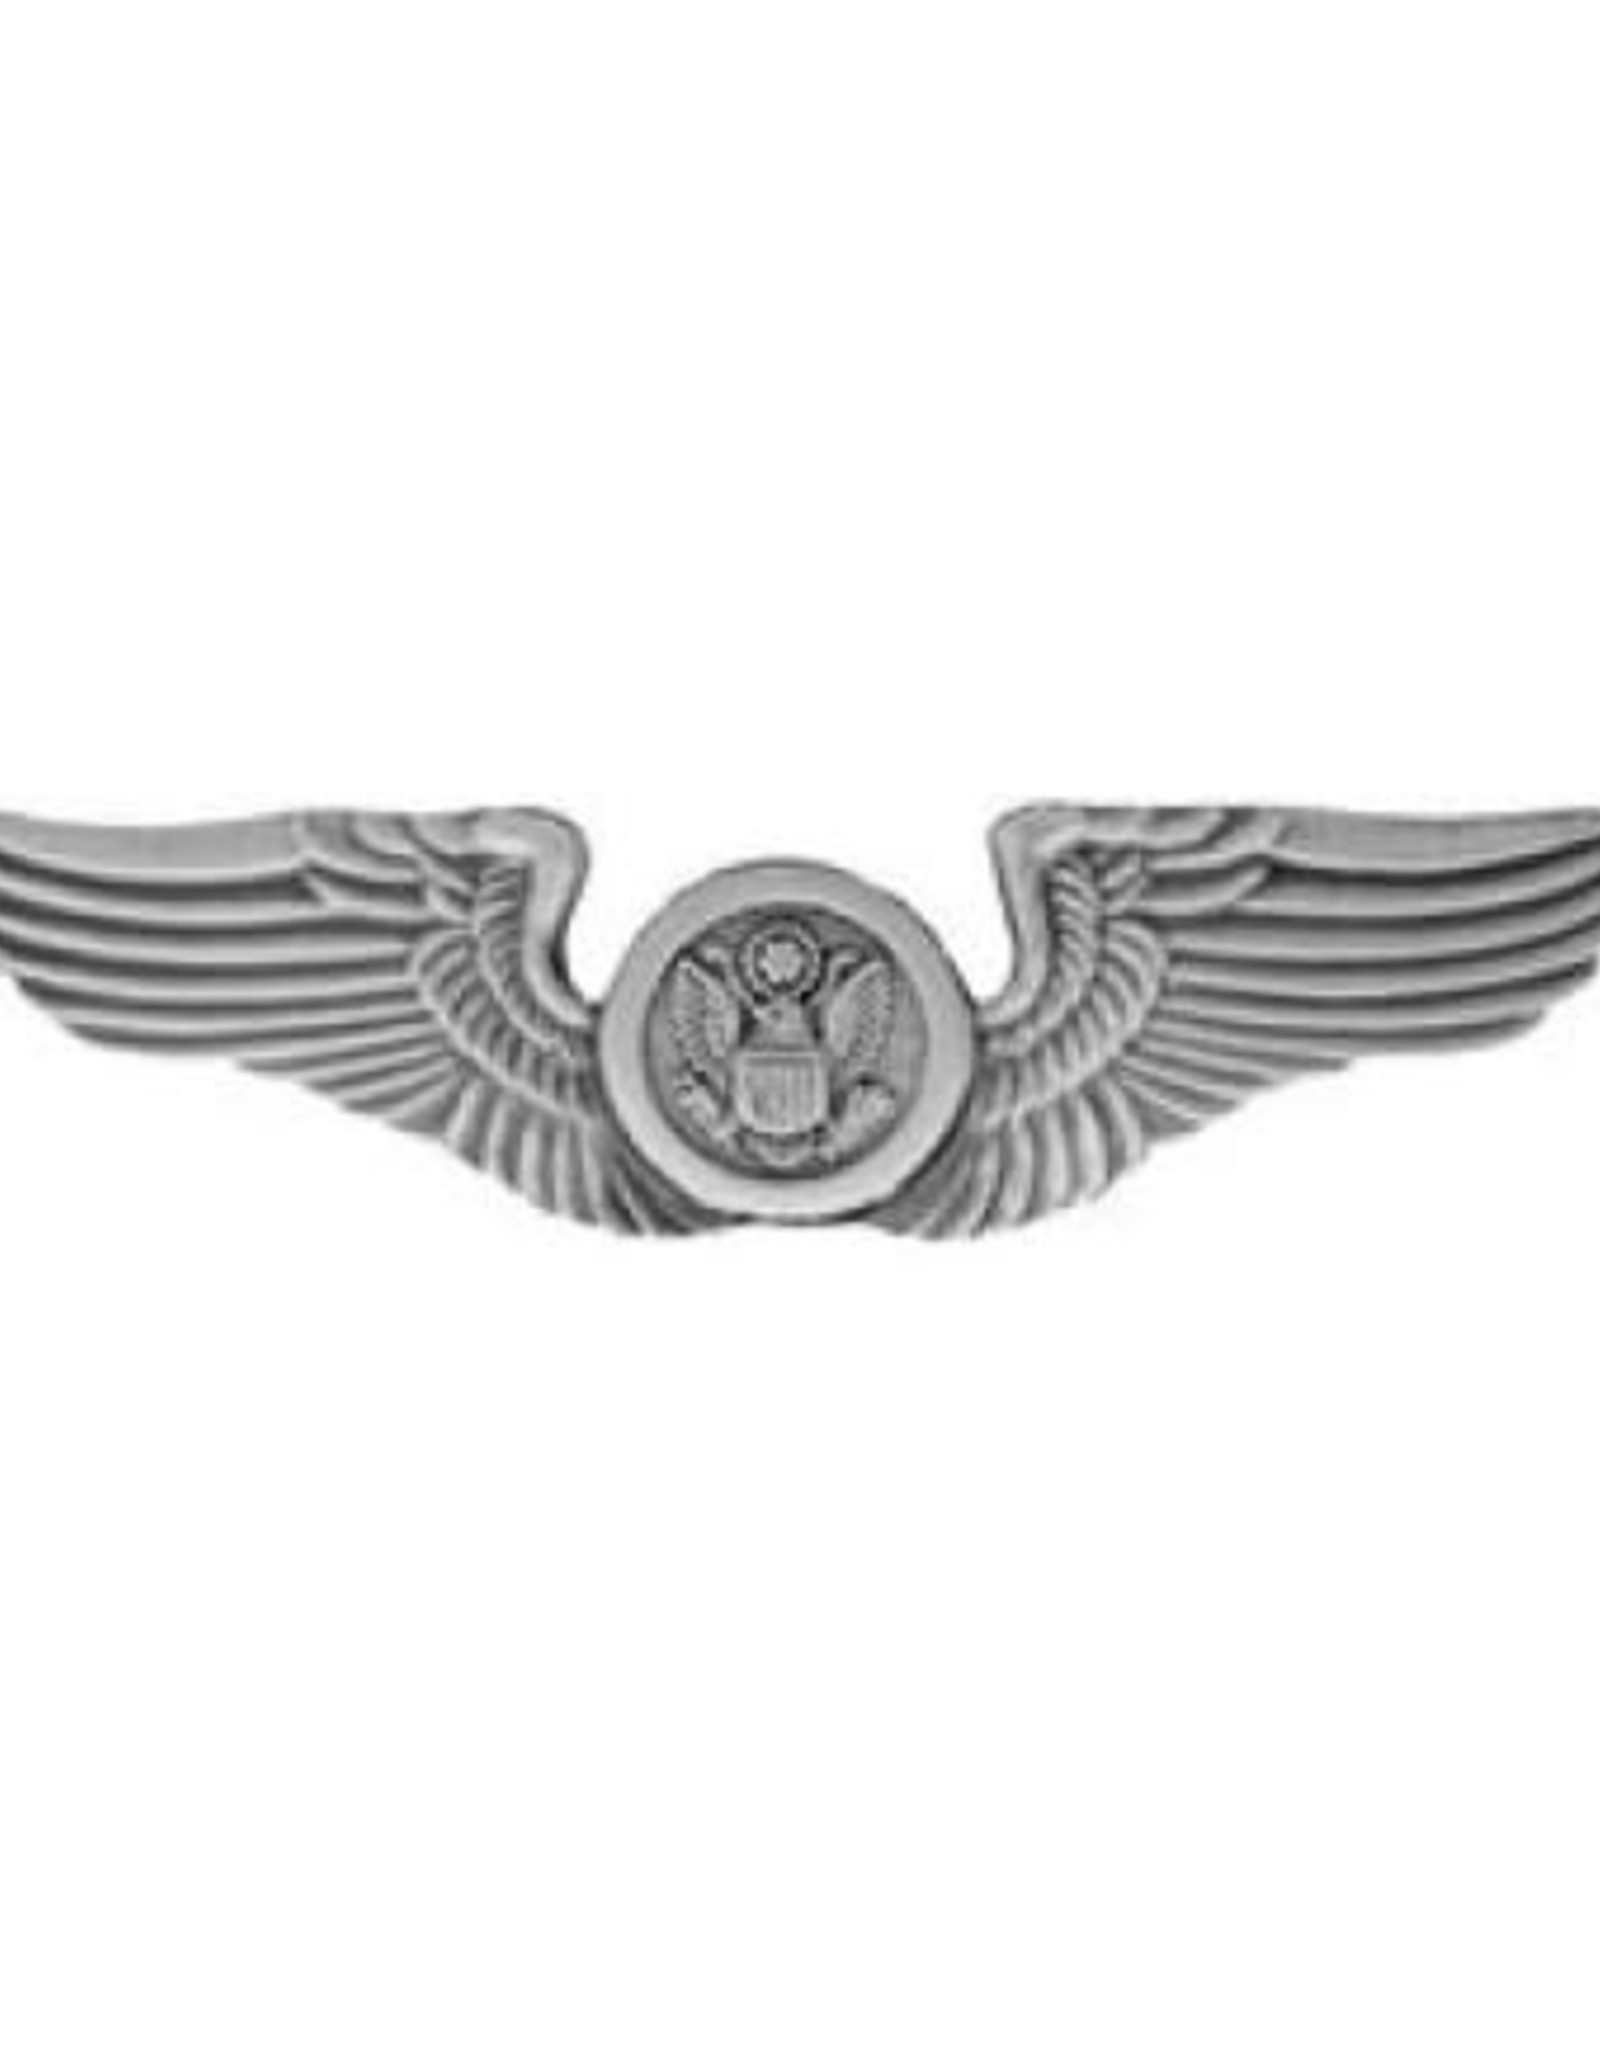 MidMil Air Force Air Crew (enlisted) Wings Pin 2 3/4""